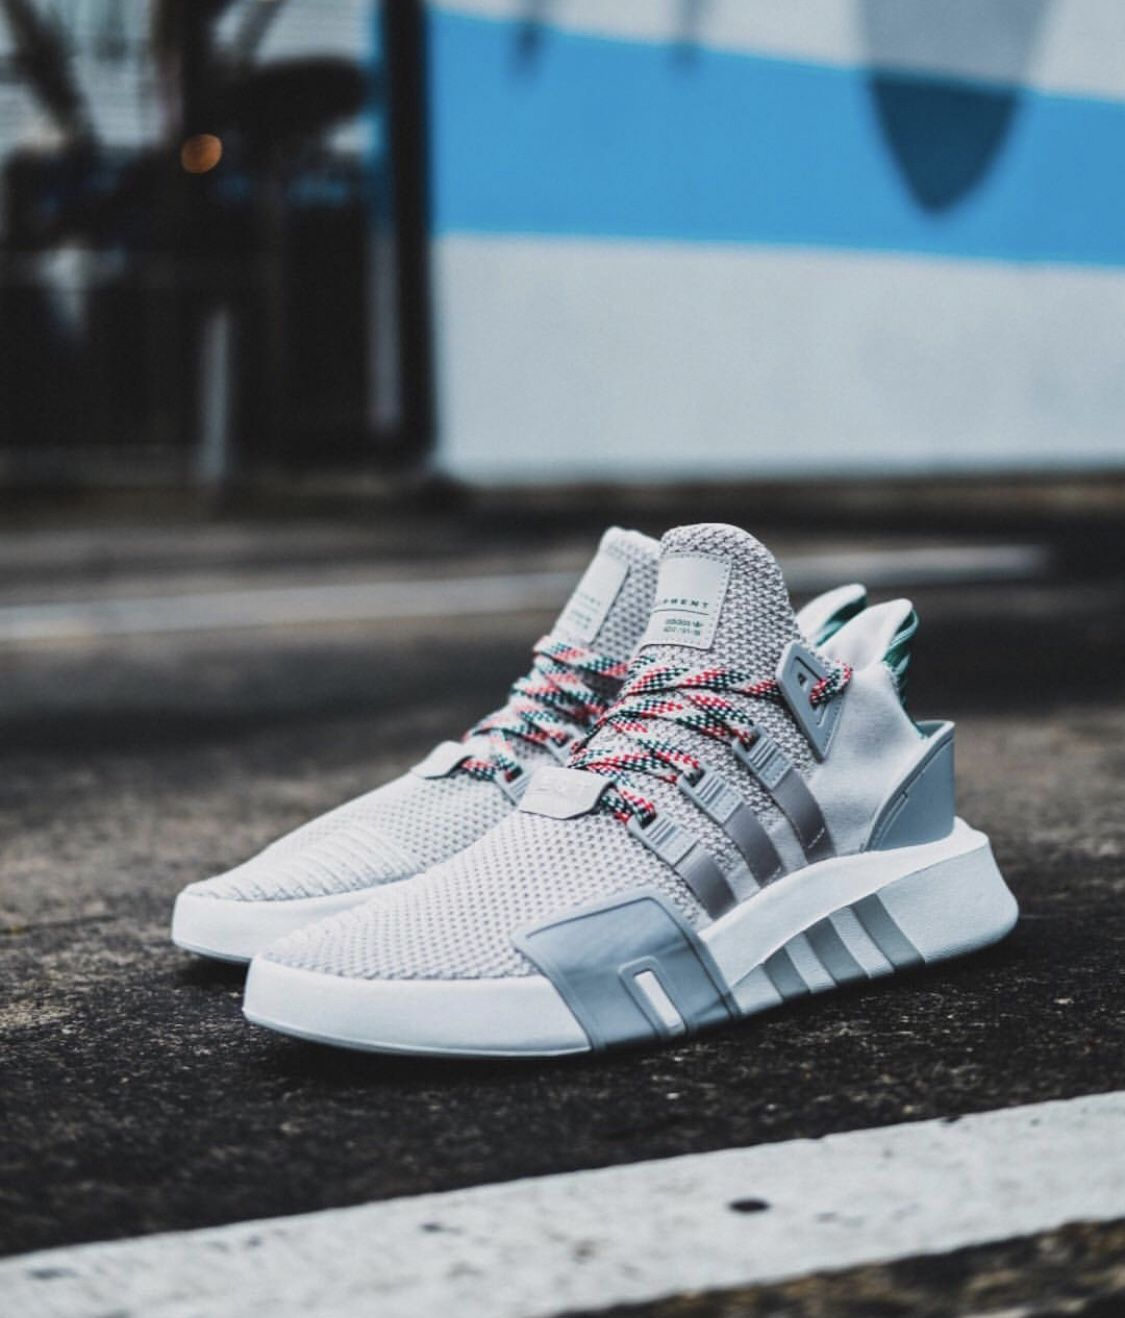 separation shoes 27ccb f7c53 Adidas EQT  Kicks (Sneakers) in 2019  Pinterest  Adidas, Sne